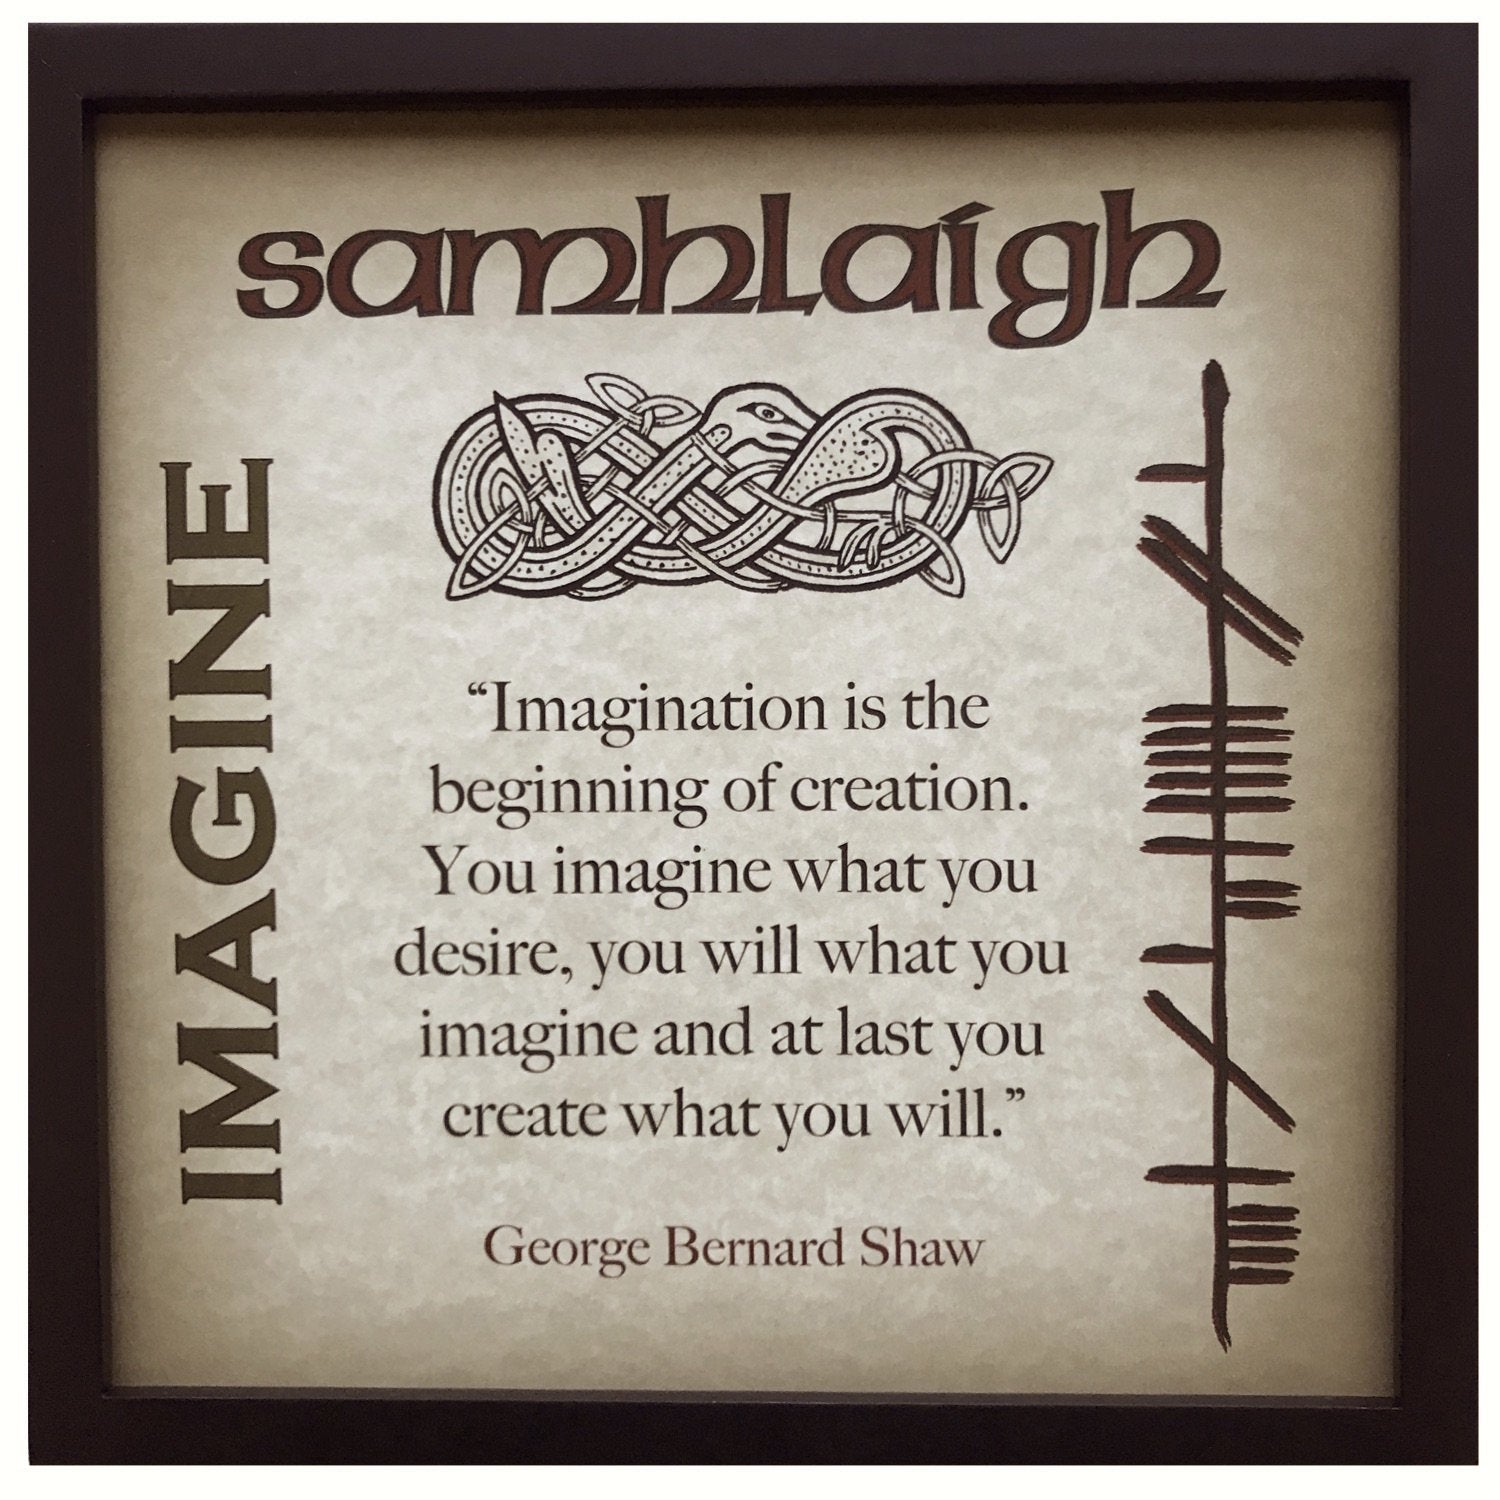 Imagine Samhlaigh George Bernard Shaw Ogham Framed Print